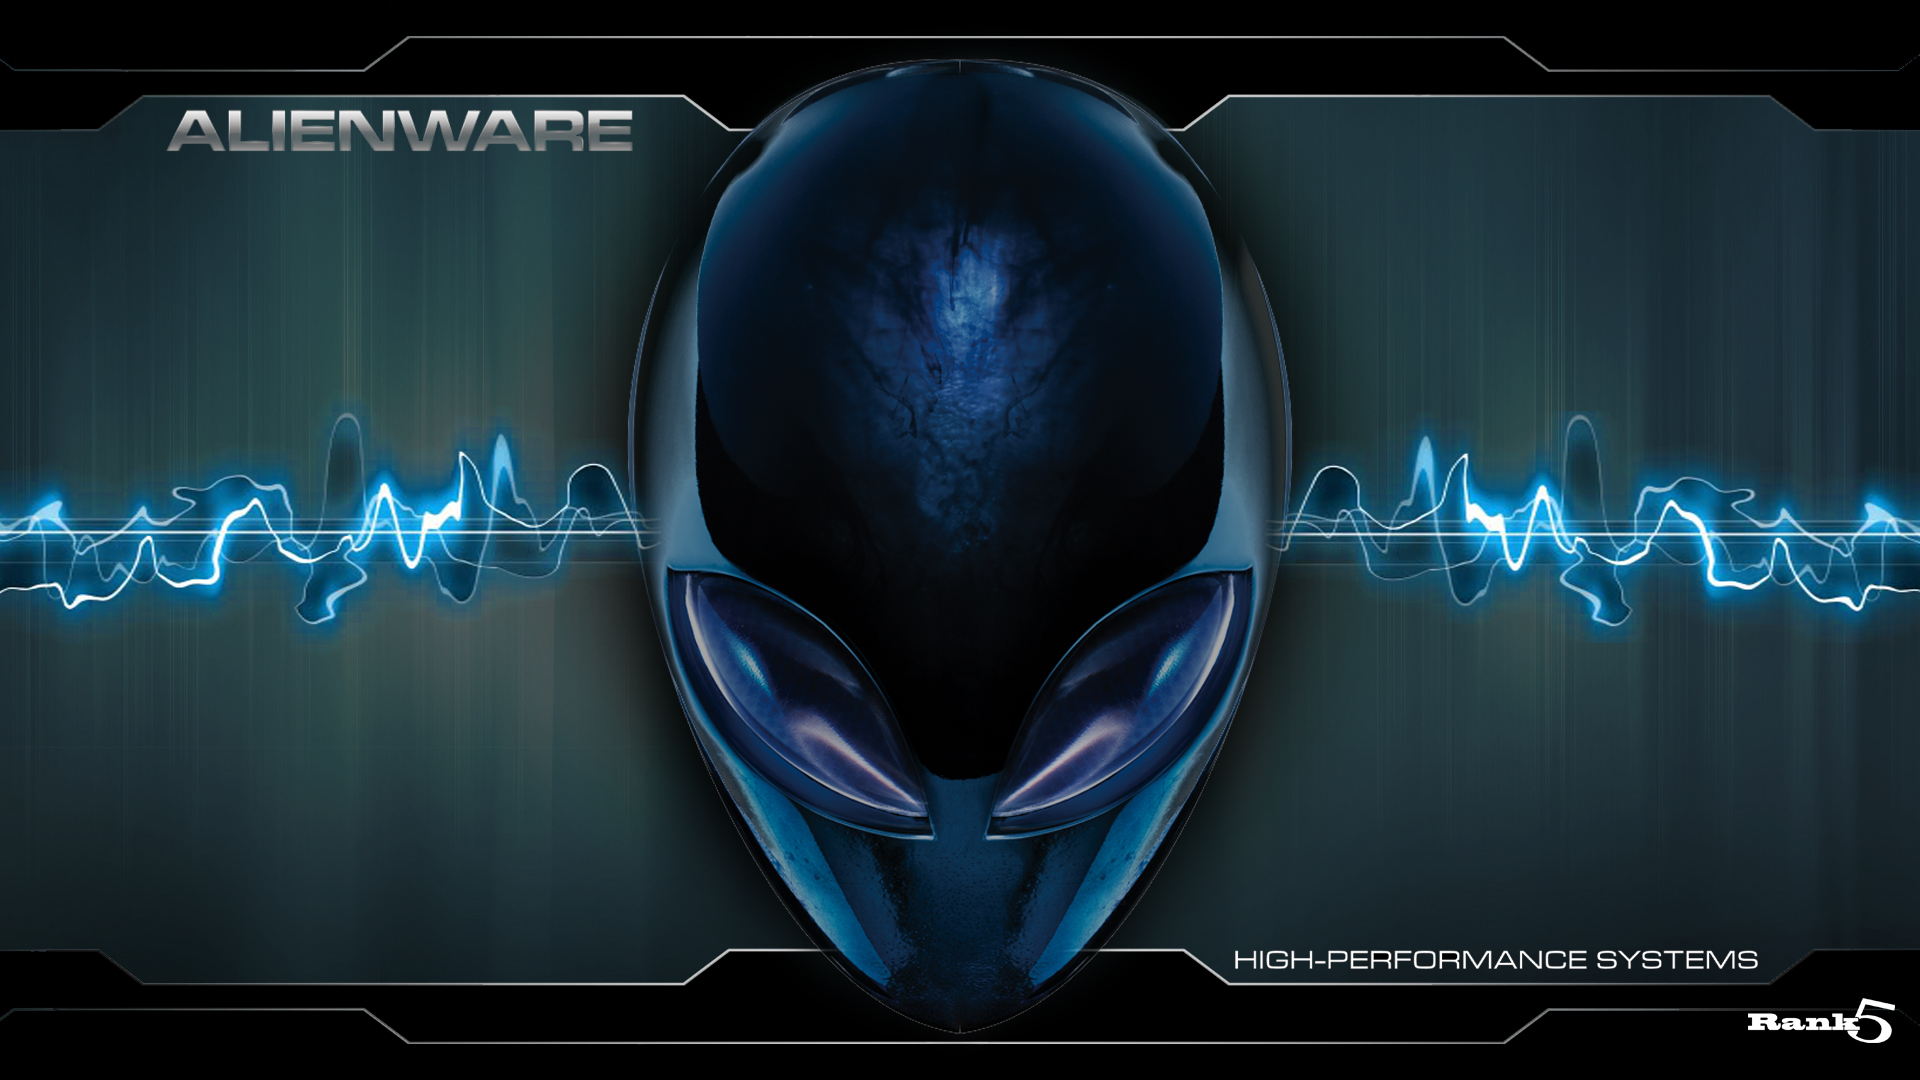 Alienware Wallpapers, Top 48 Quality Cool Alienware Images